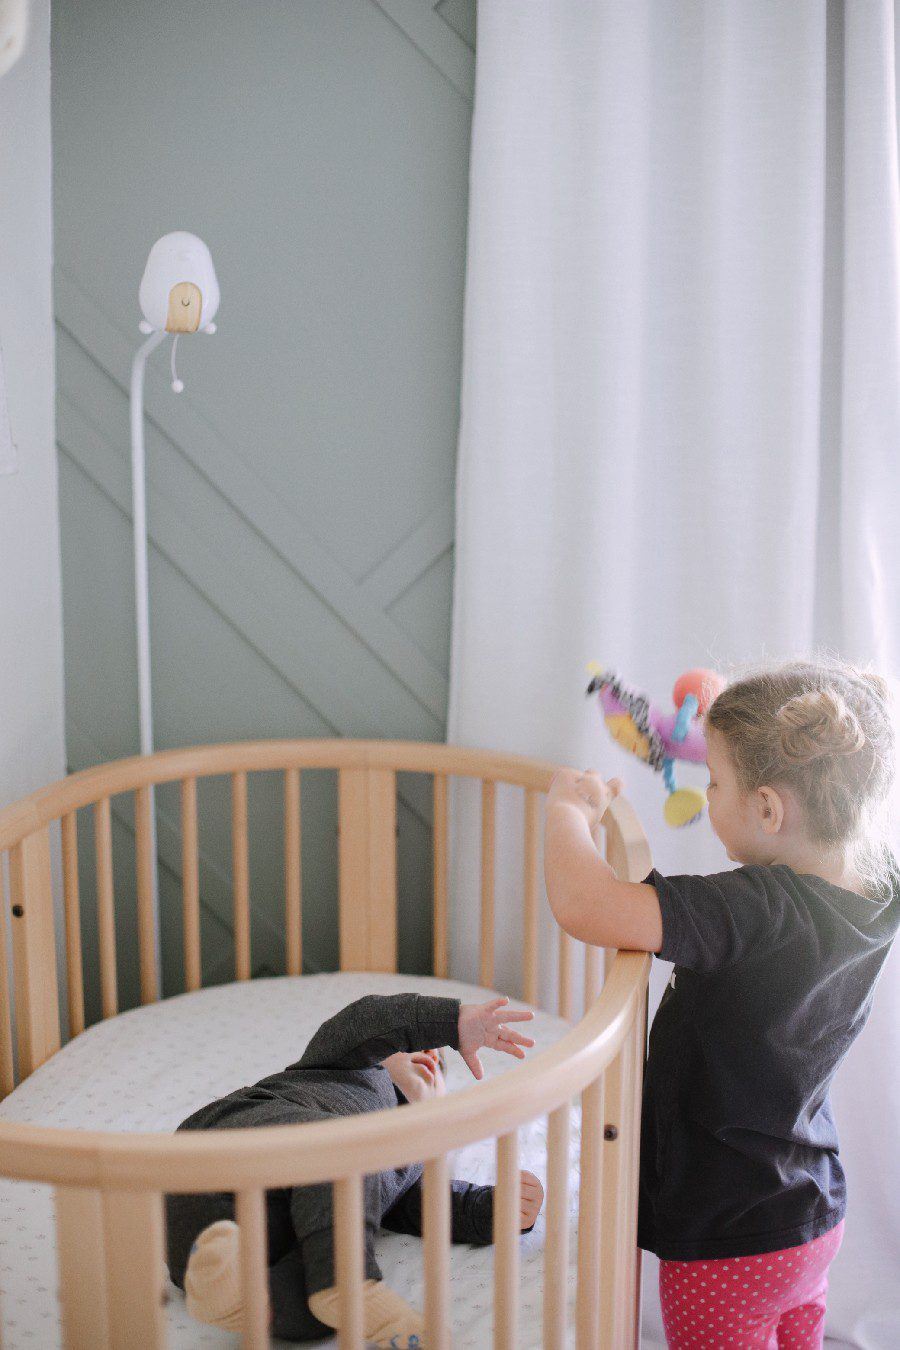 Big sister playing with baby in the stokke sleepi crib. The Best Baby Monitor for Twins - Cubo Ai Smart Baby Monitor Review  Best Baby Monitor by popular Florida motherhood blog, Fresh Mommy Blog: image of a little girl standing next to a baby laying in a stokke sleepi crib.